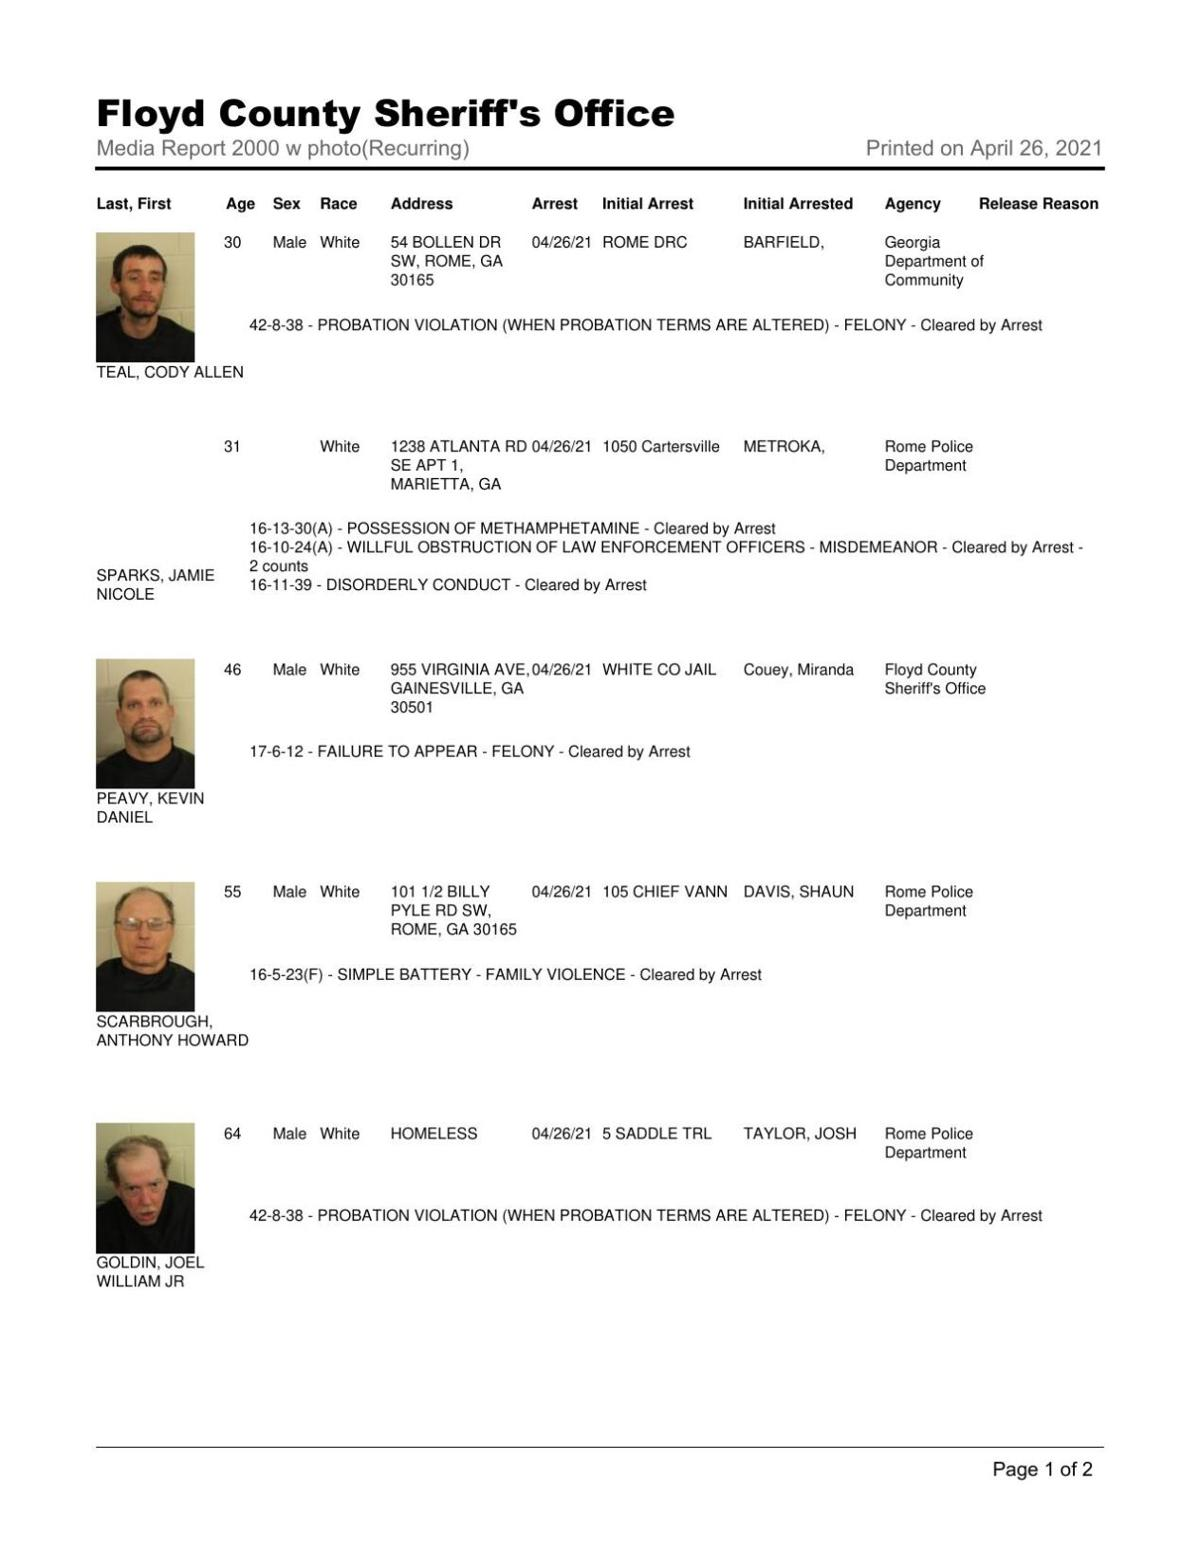 Floyd County Jail report for Monday, April 26